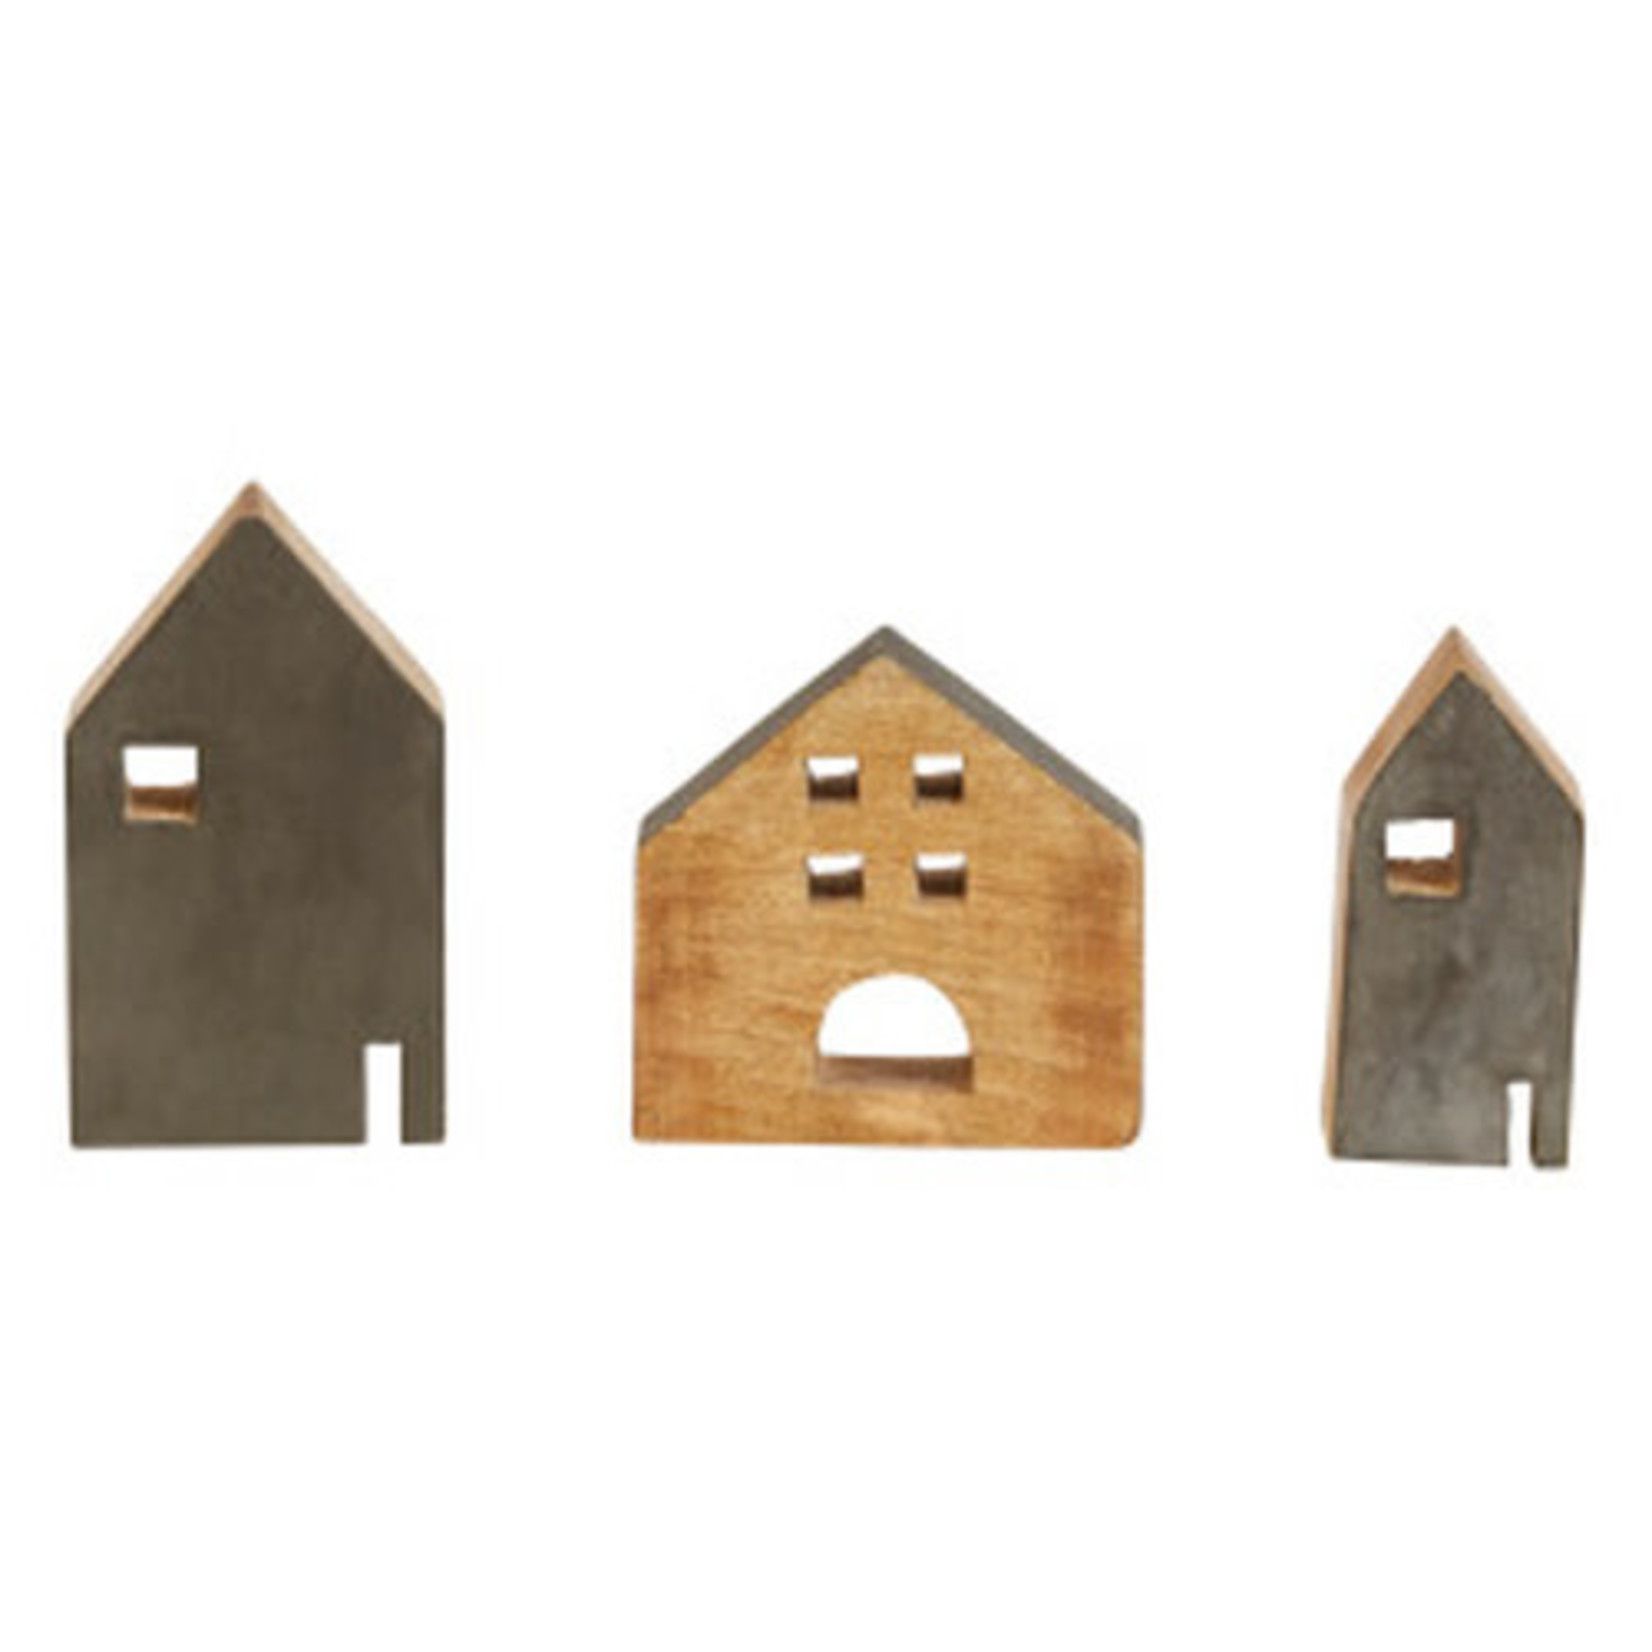 Distressed Charcoal Houses